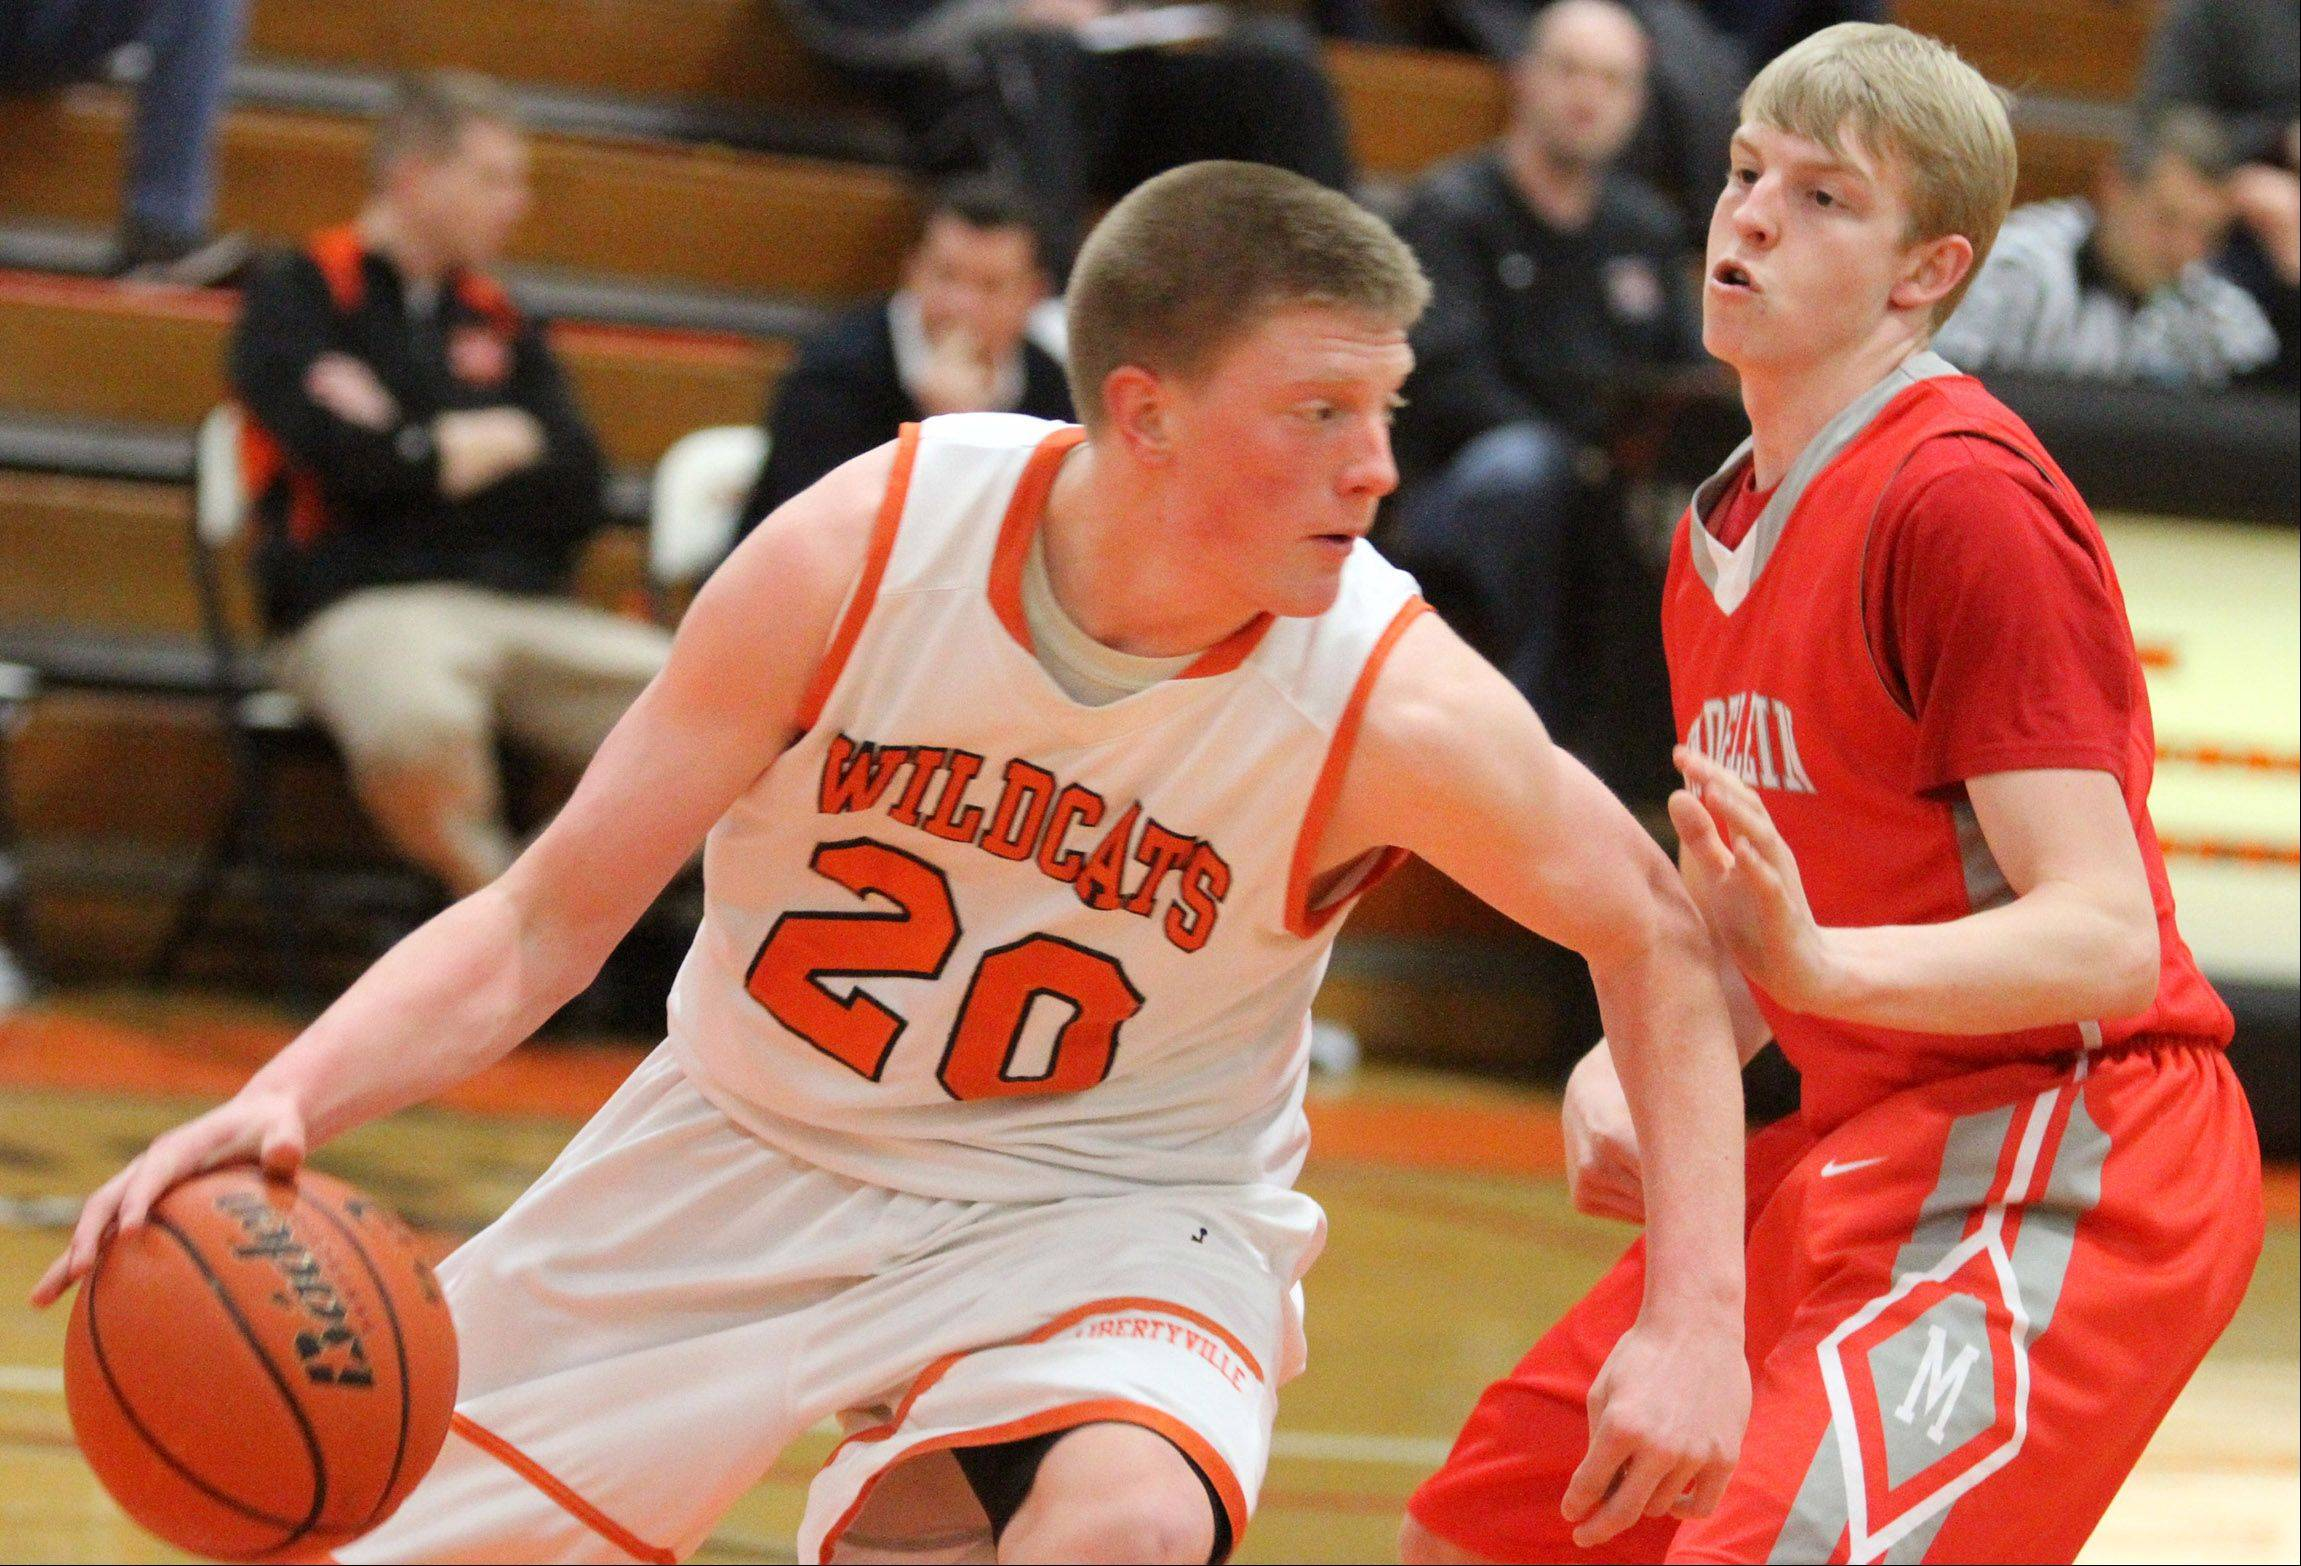 Images: Mundelein vs. Libertyville, boys basketball